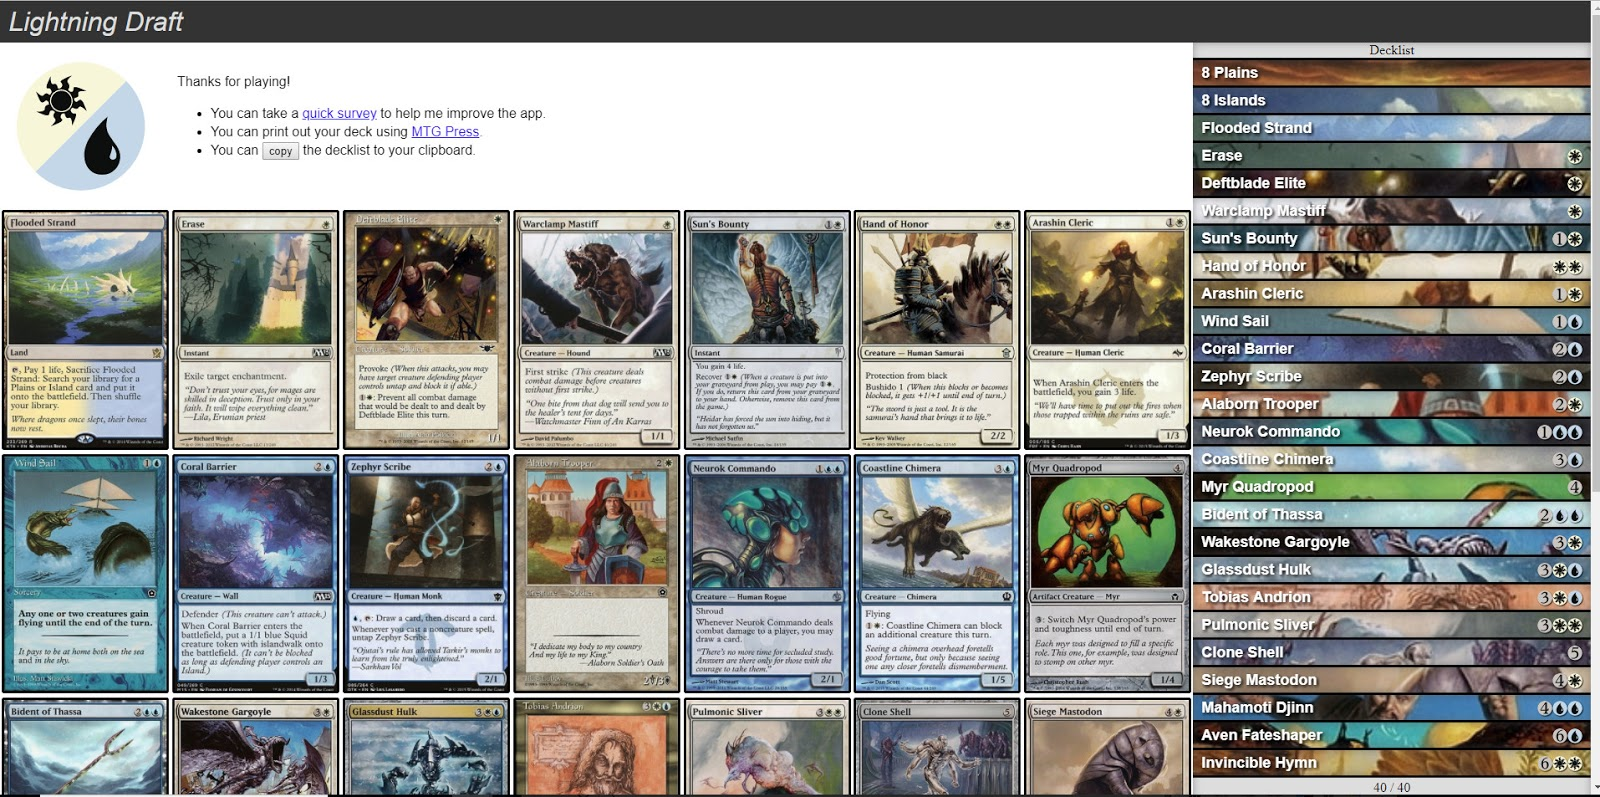 Post-draft page for lightning draft